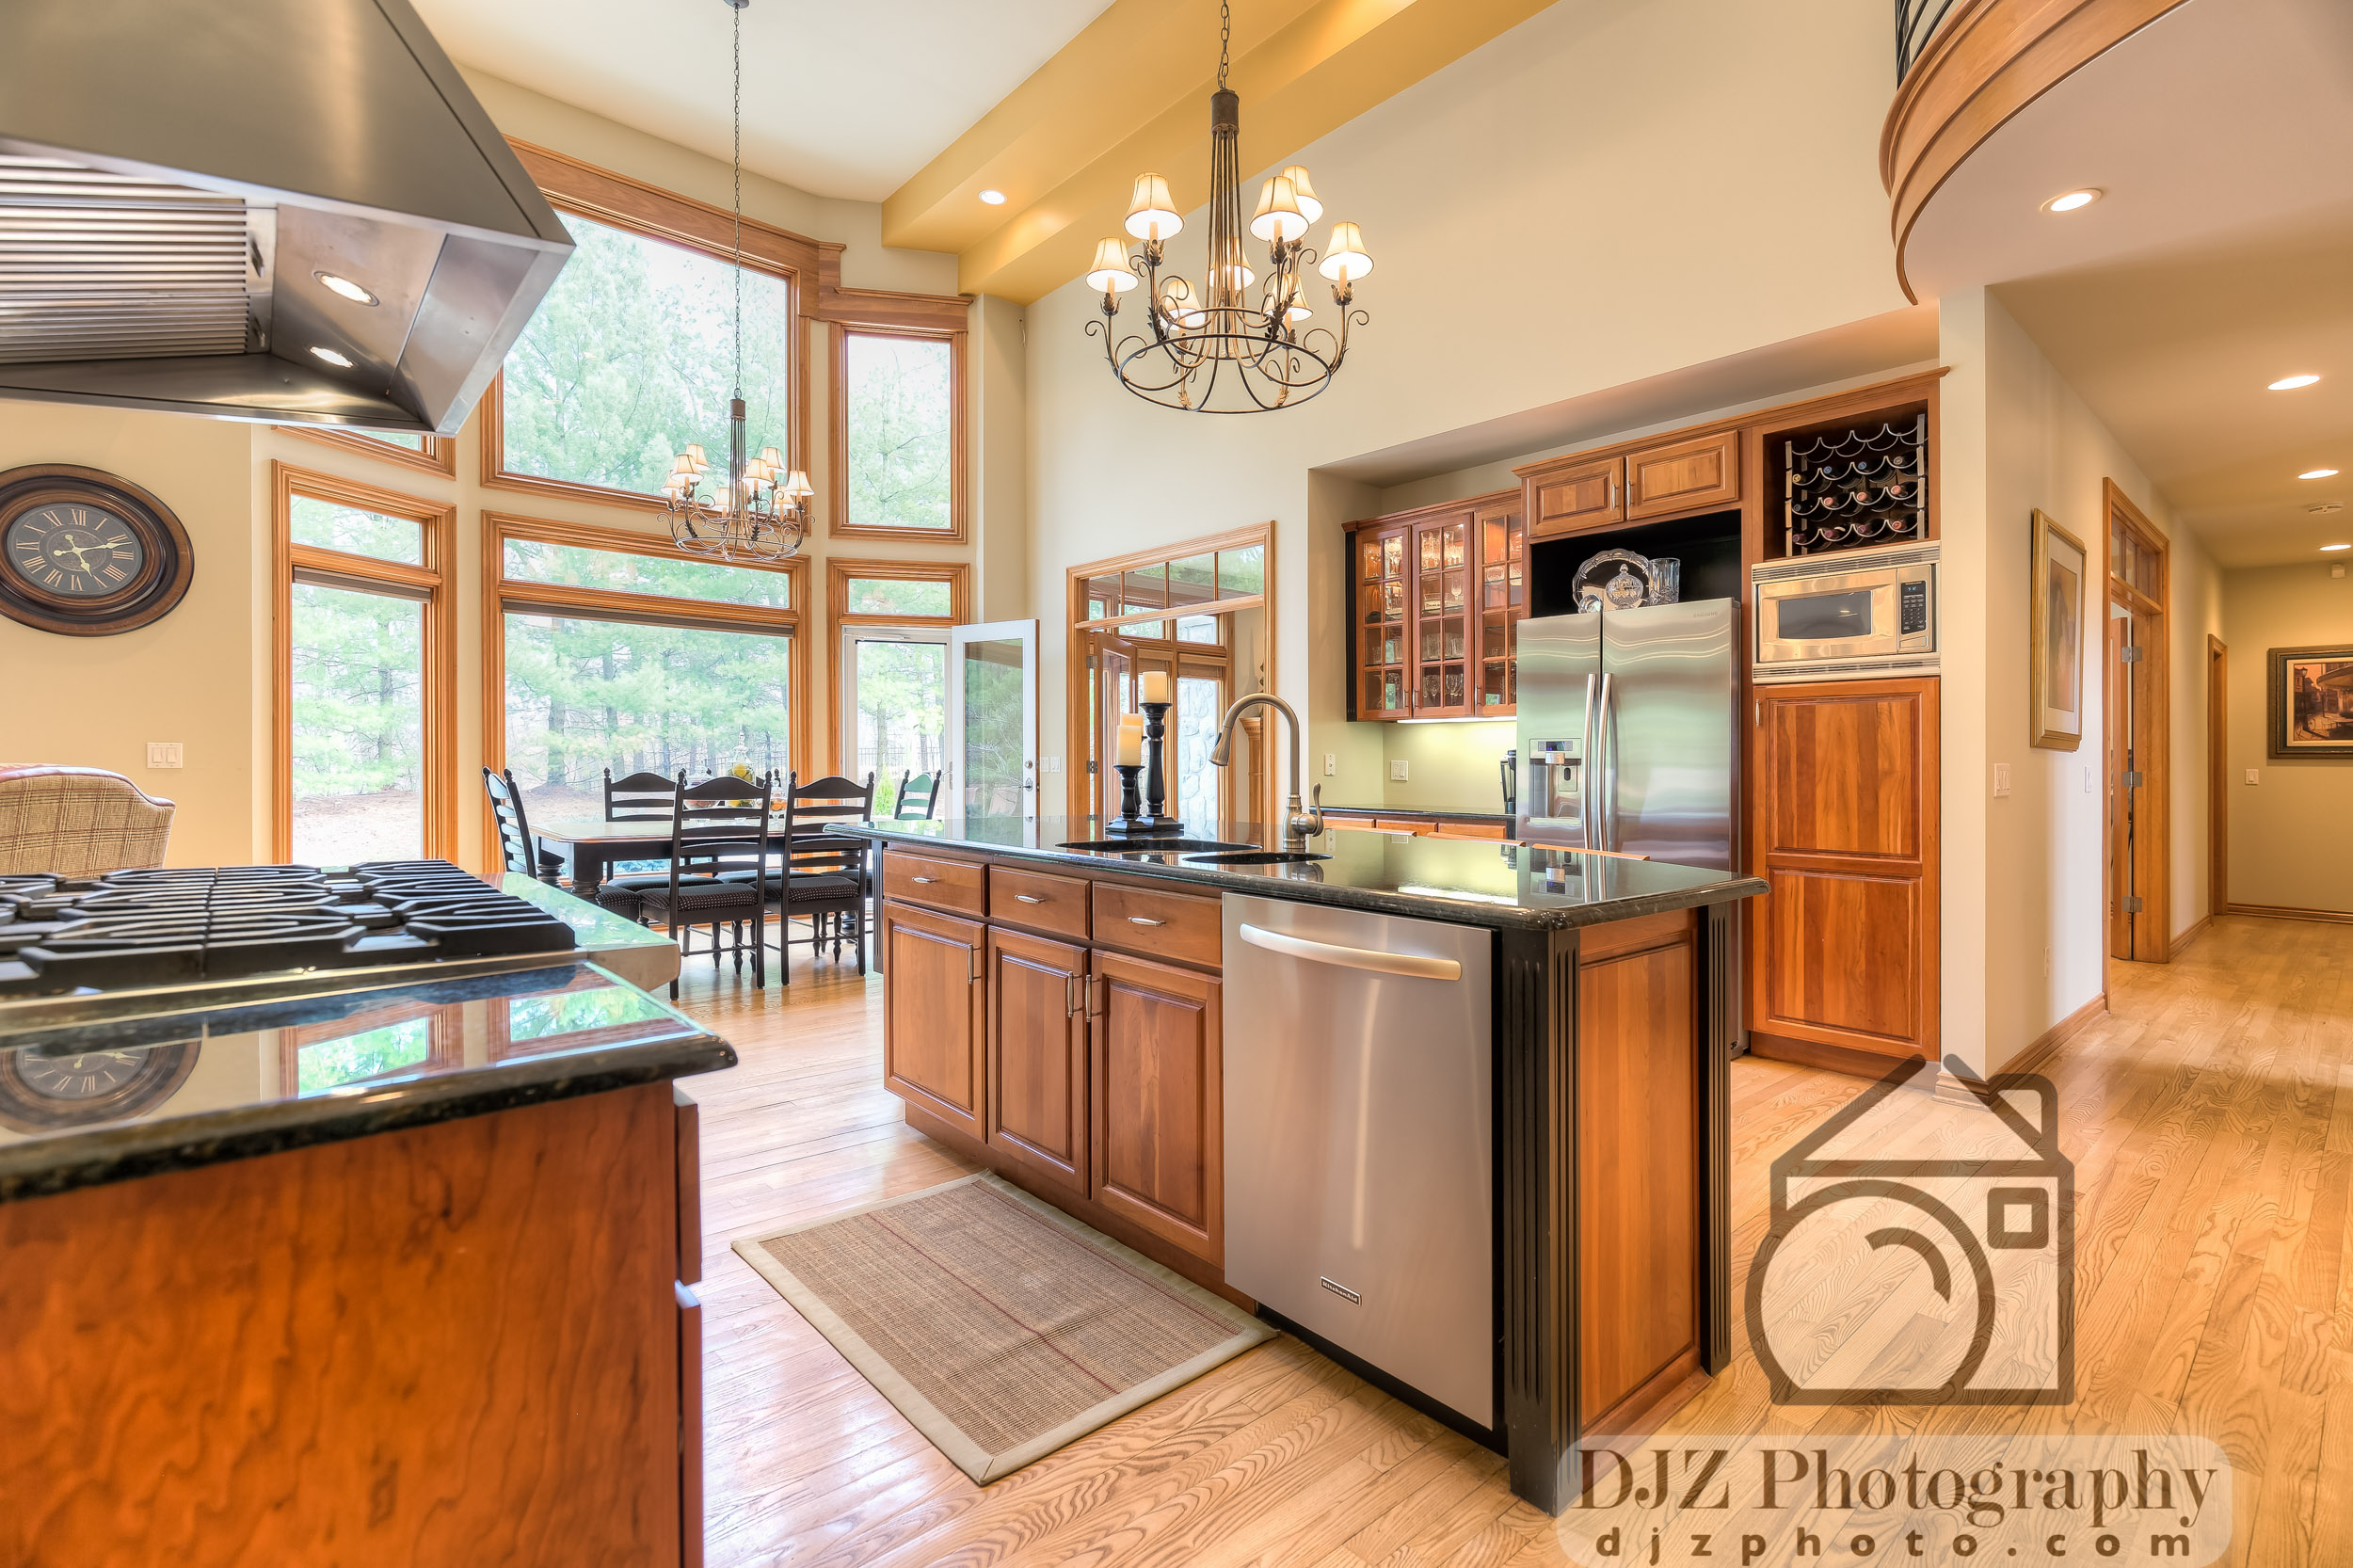 Kitchen 1 - Real Estate Photography